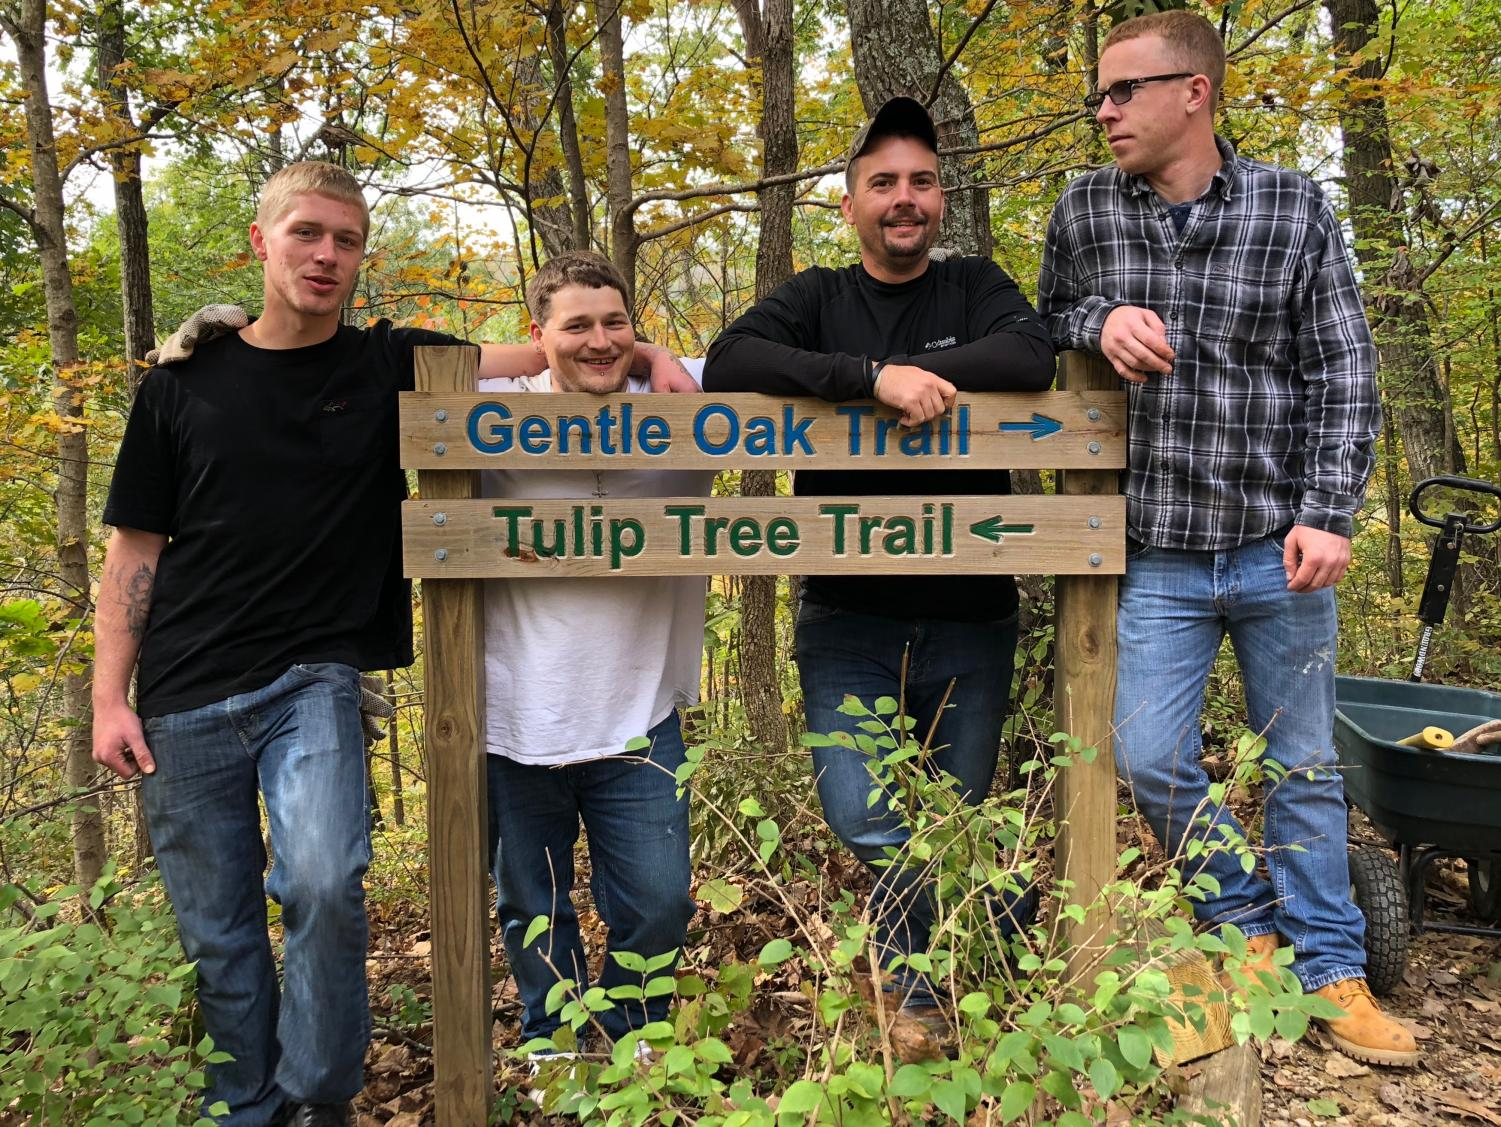 Tyler Webb (left) and fellow recovery point volunteers pose with trail signs, on a brief break from replacing hazardous steps on the paths.